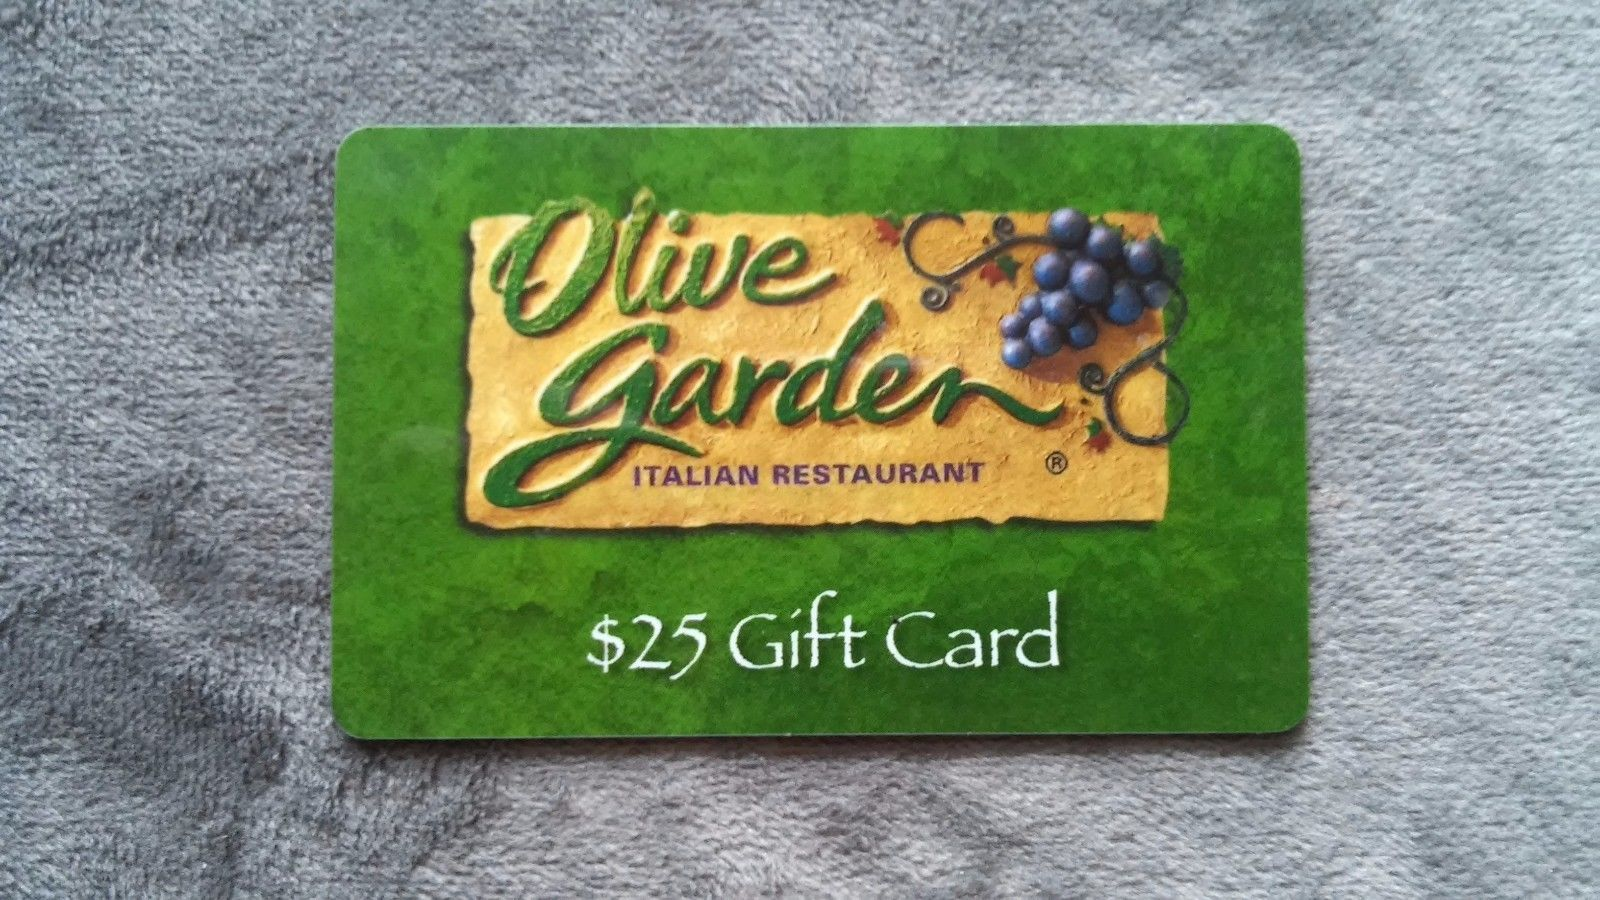 #Coupons #GiftCards Olive Garden Gift Card - $25.00 #Coupons #GiftCards